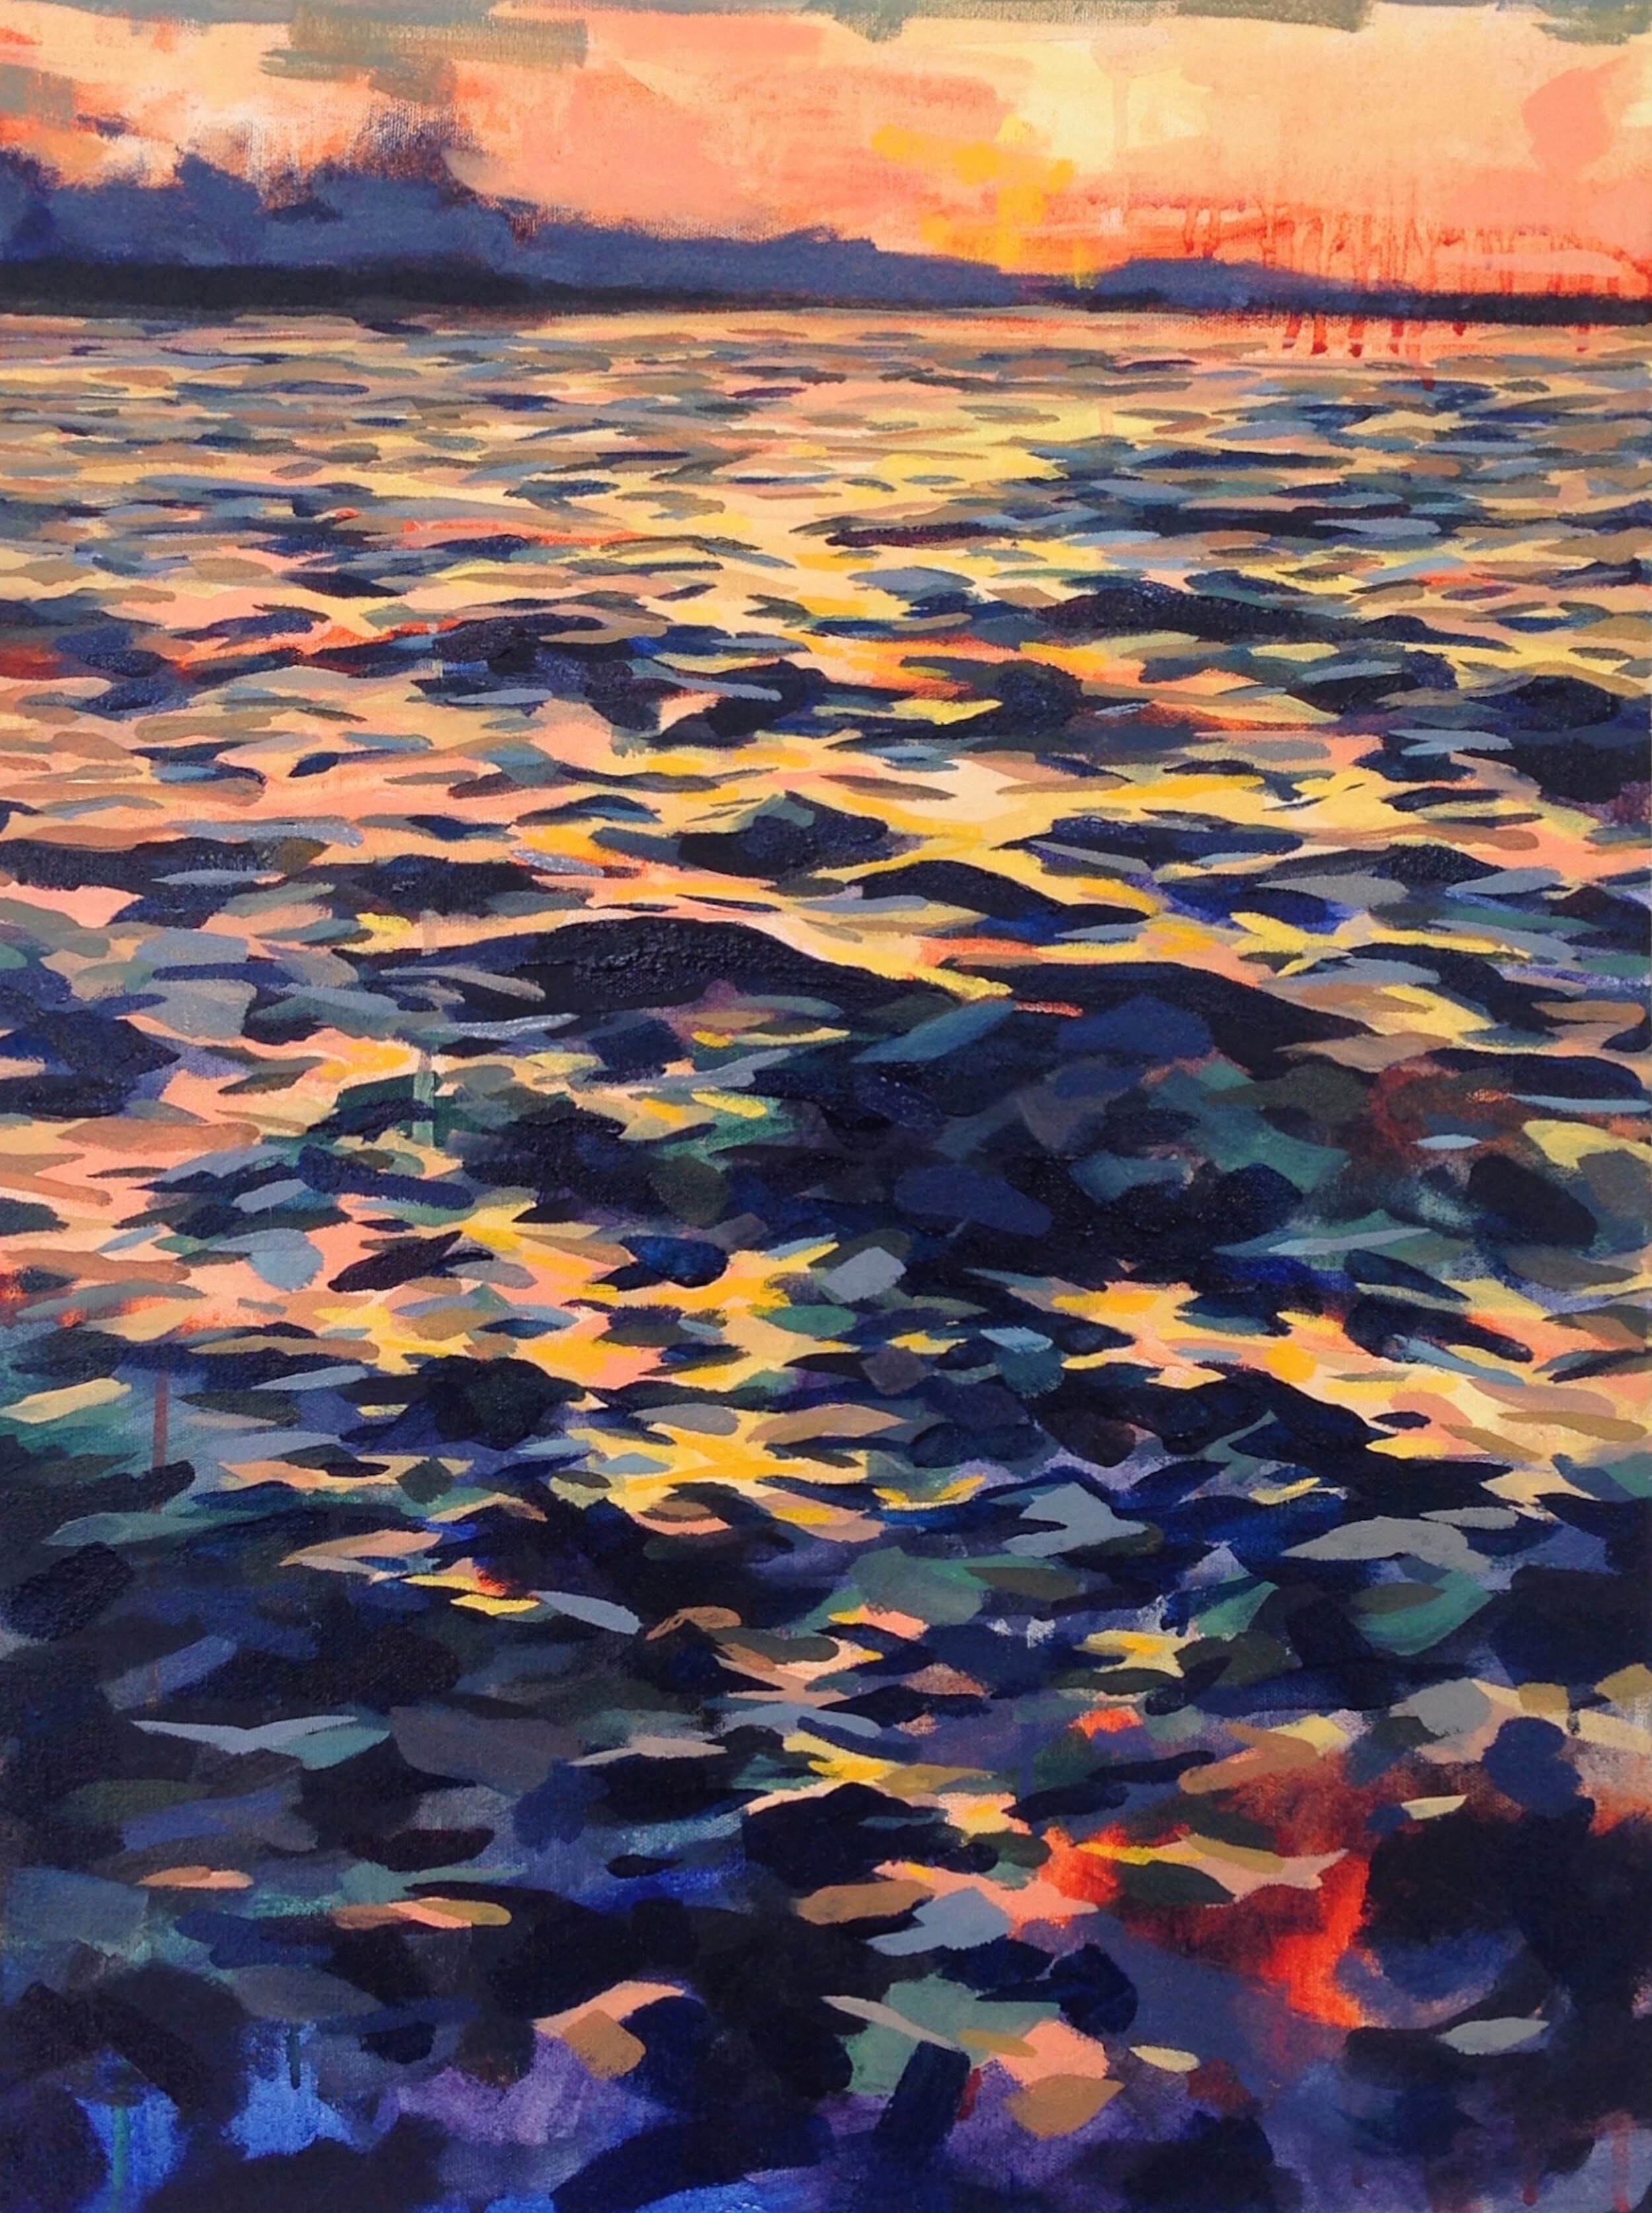 """'Sundown'  2014  18"""" x 24""""  water soluble oil on canvas  sold"""